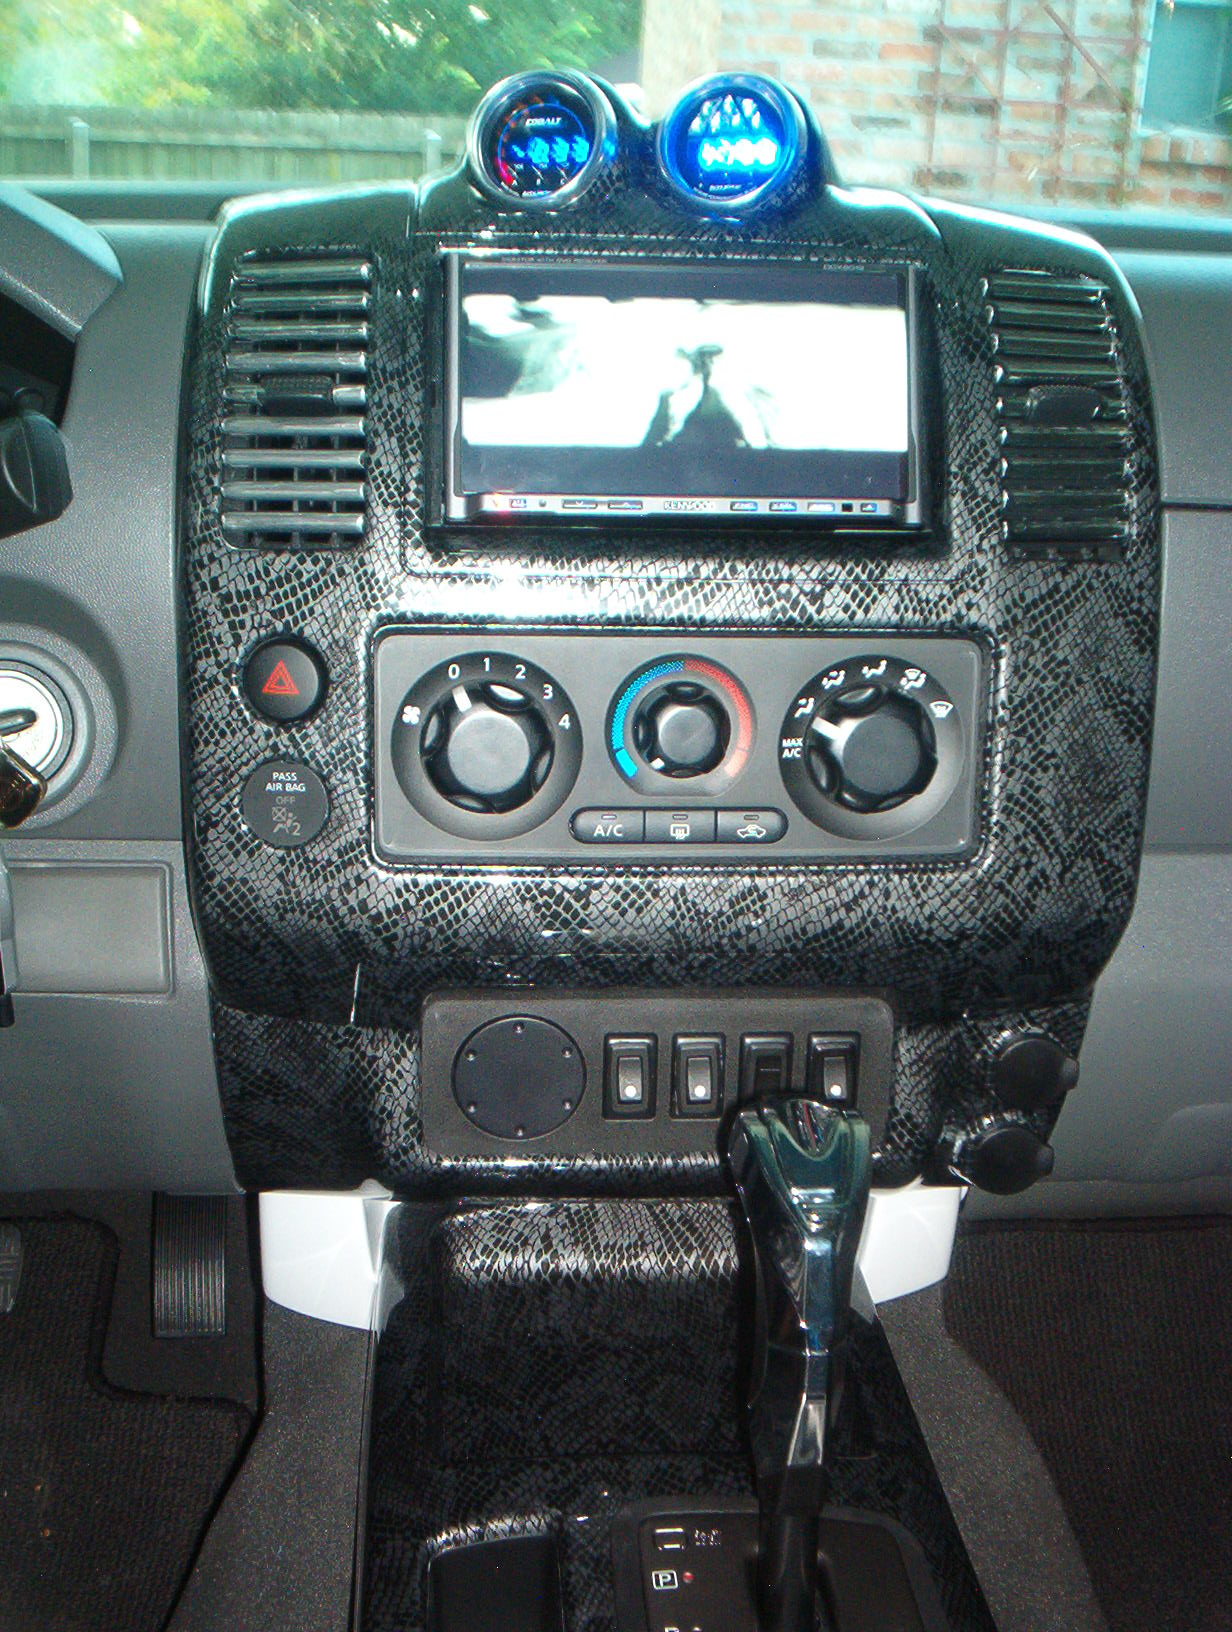 Nissan Frontier Forum - View Single Post - 2 Gauge Dash Mount Pod